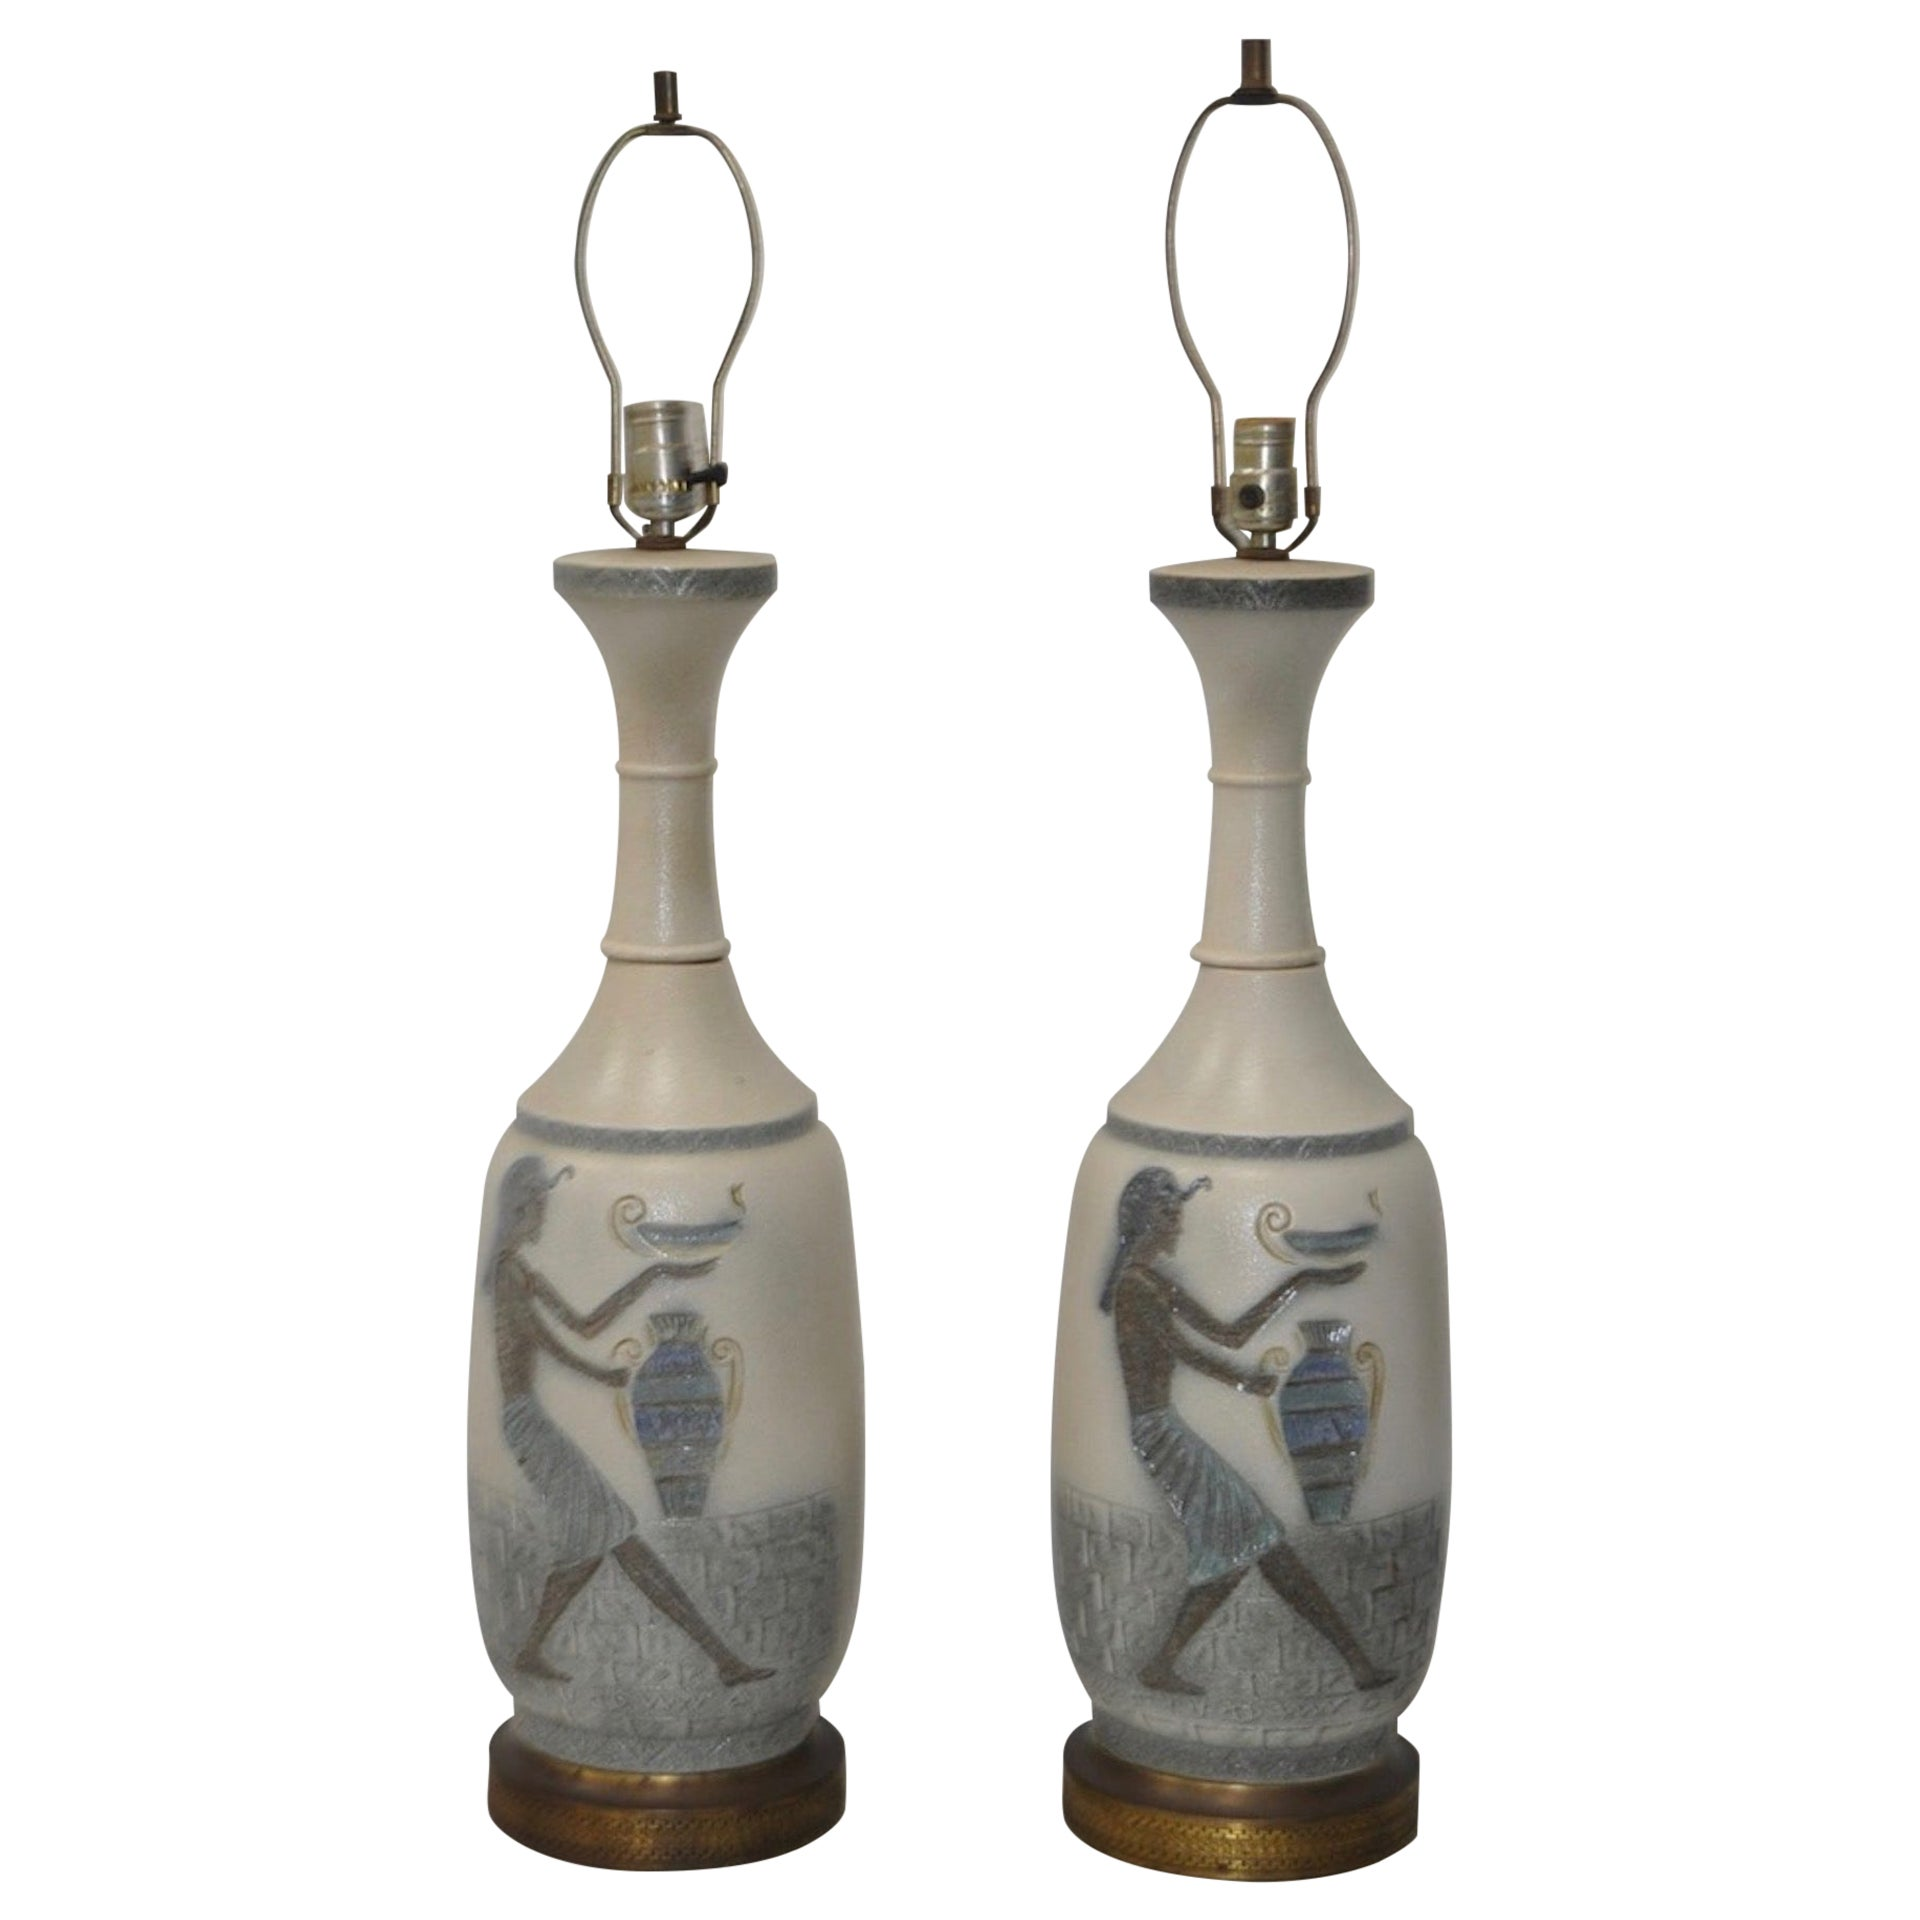 Pair of Vintage Egyptian Revival Ceramic Table Lamps, circa 1960s